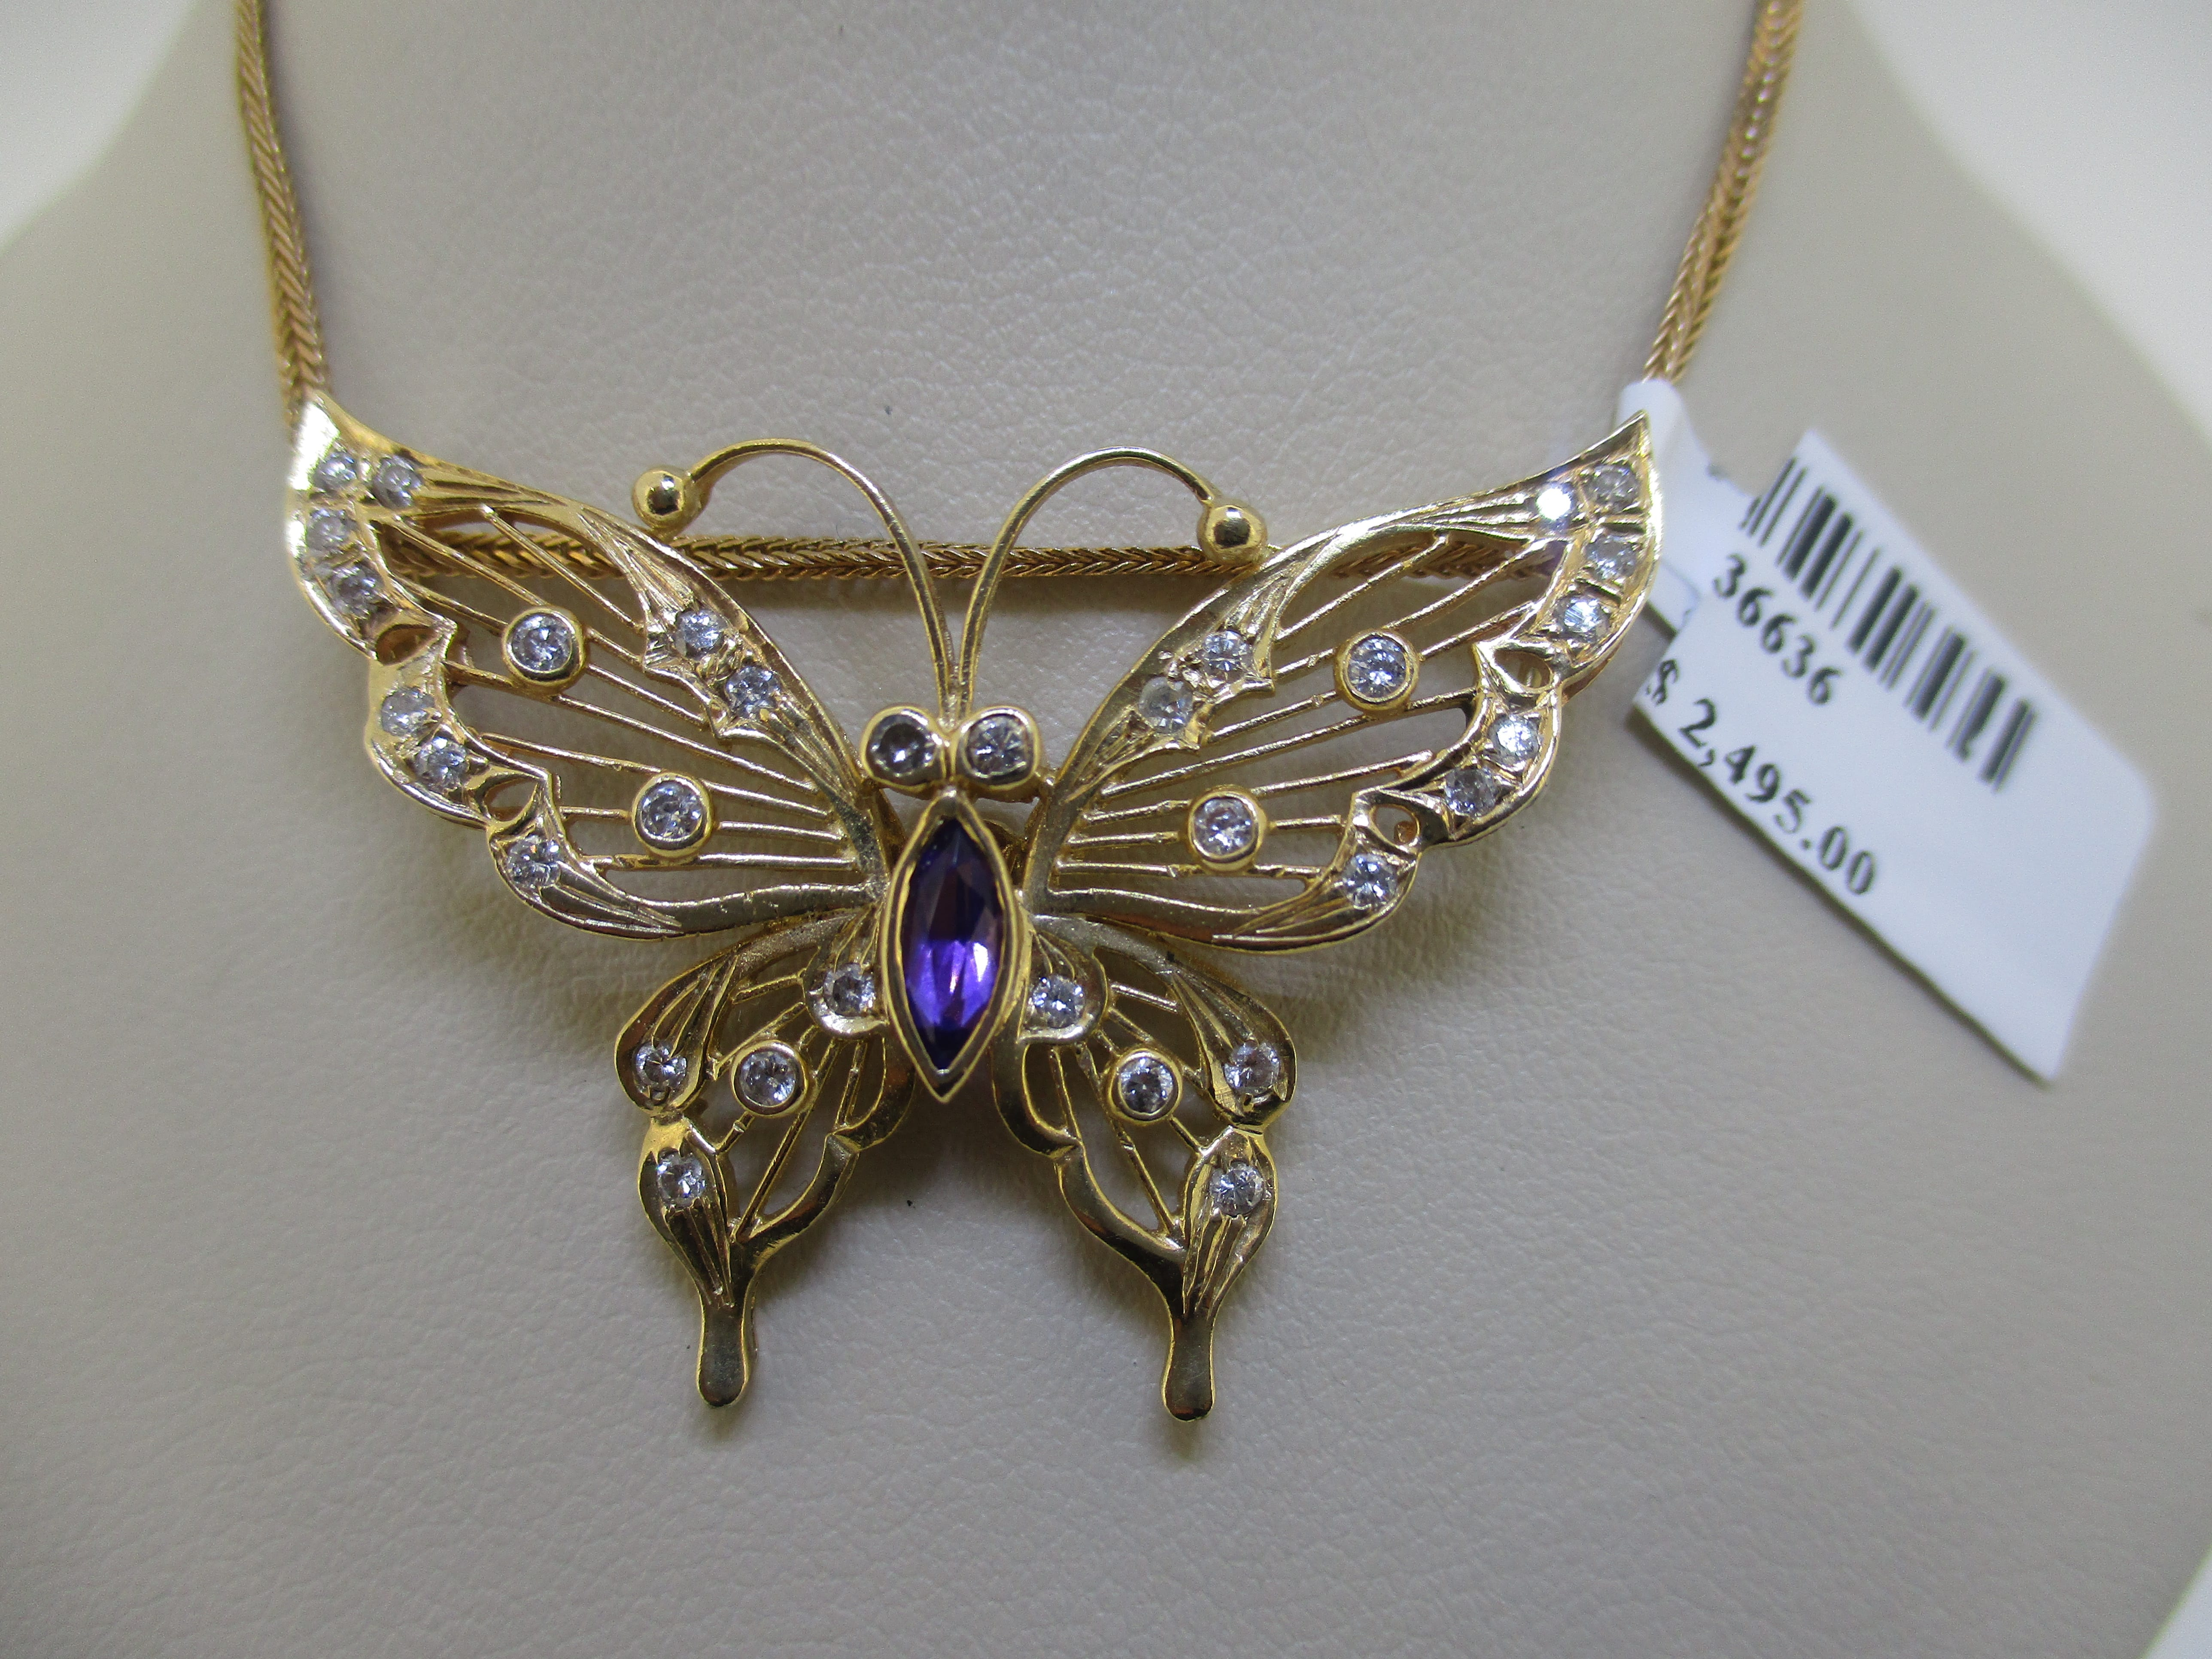 14K 7.77G YG BUTTERFLY AMETHYST AND DIAMOND NECKLACE